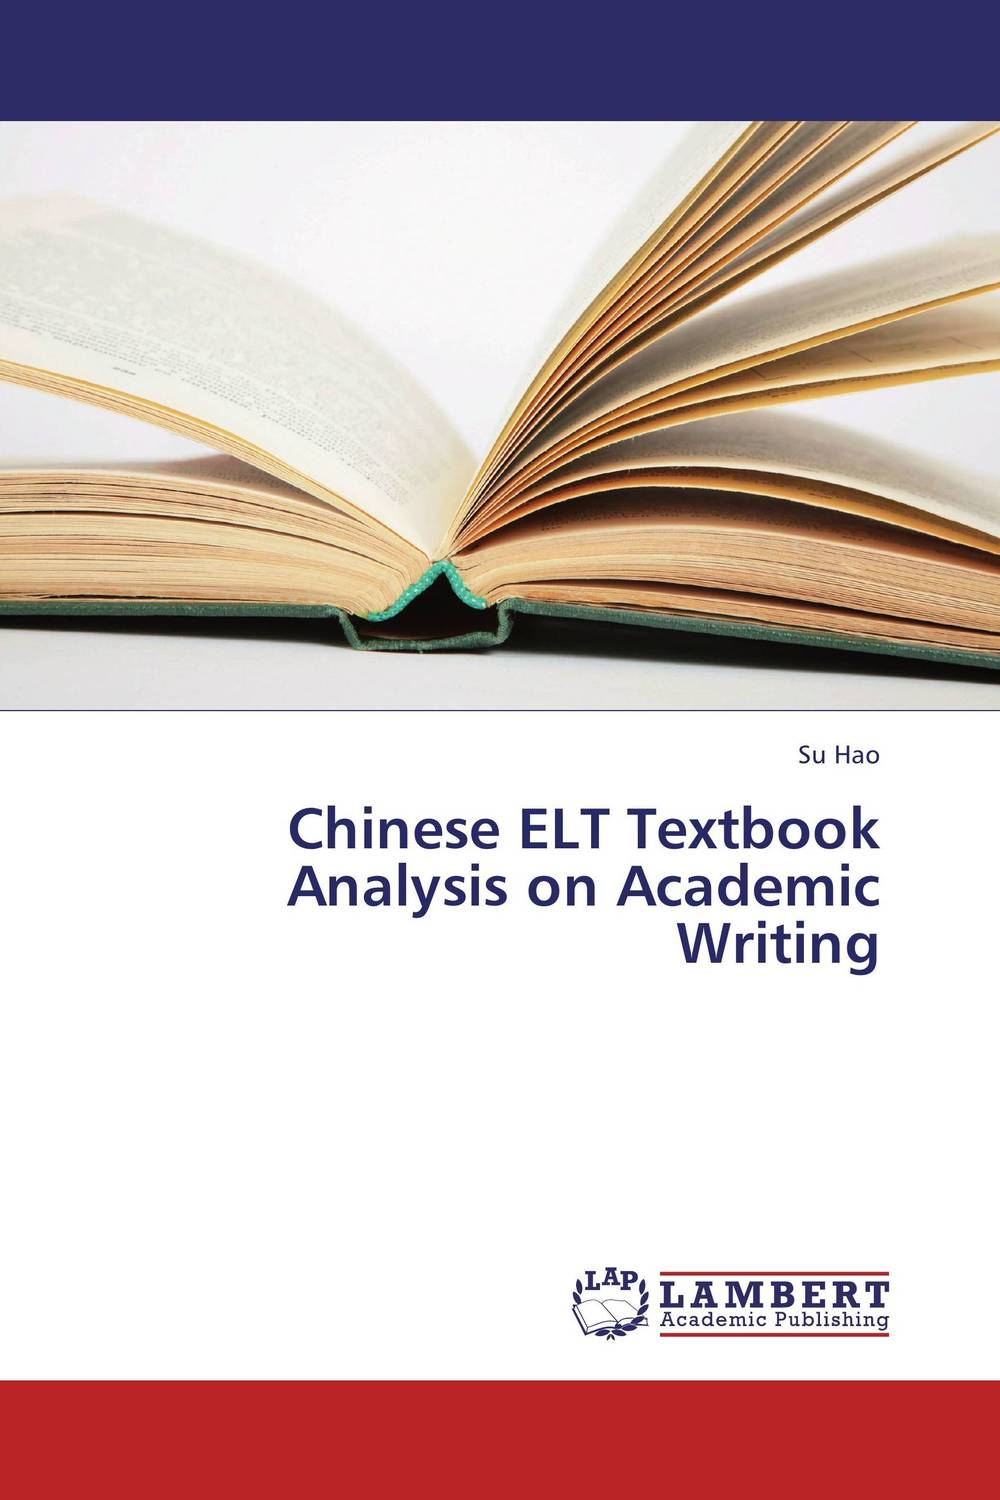 Chinese ELT Textbook Analysis on Academic Writing